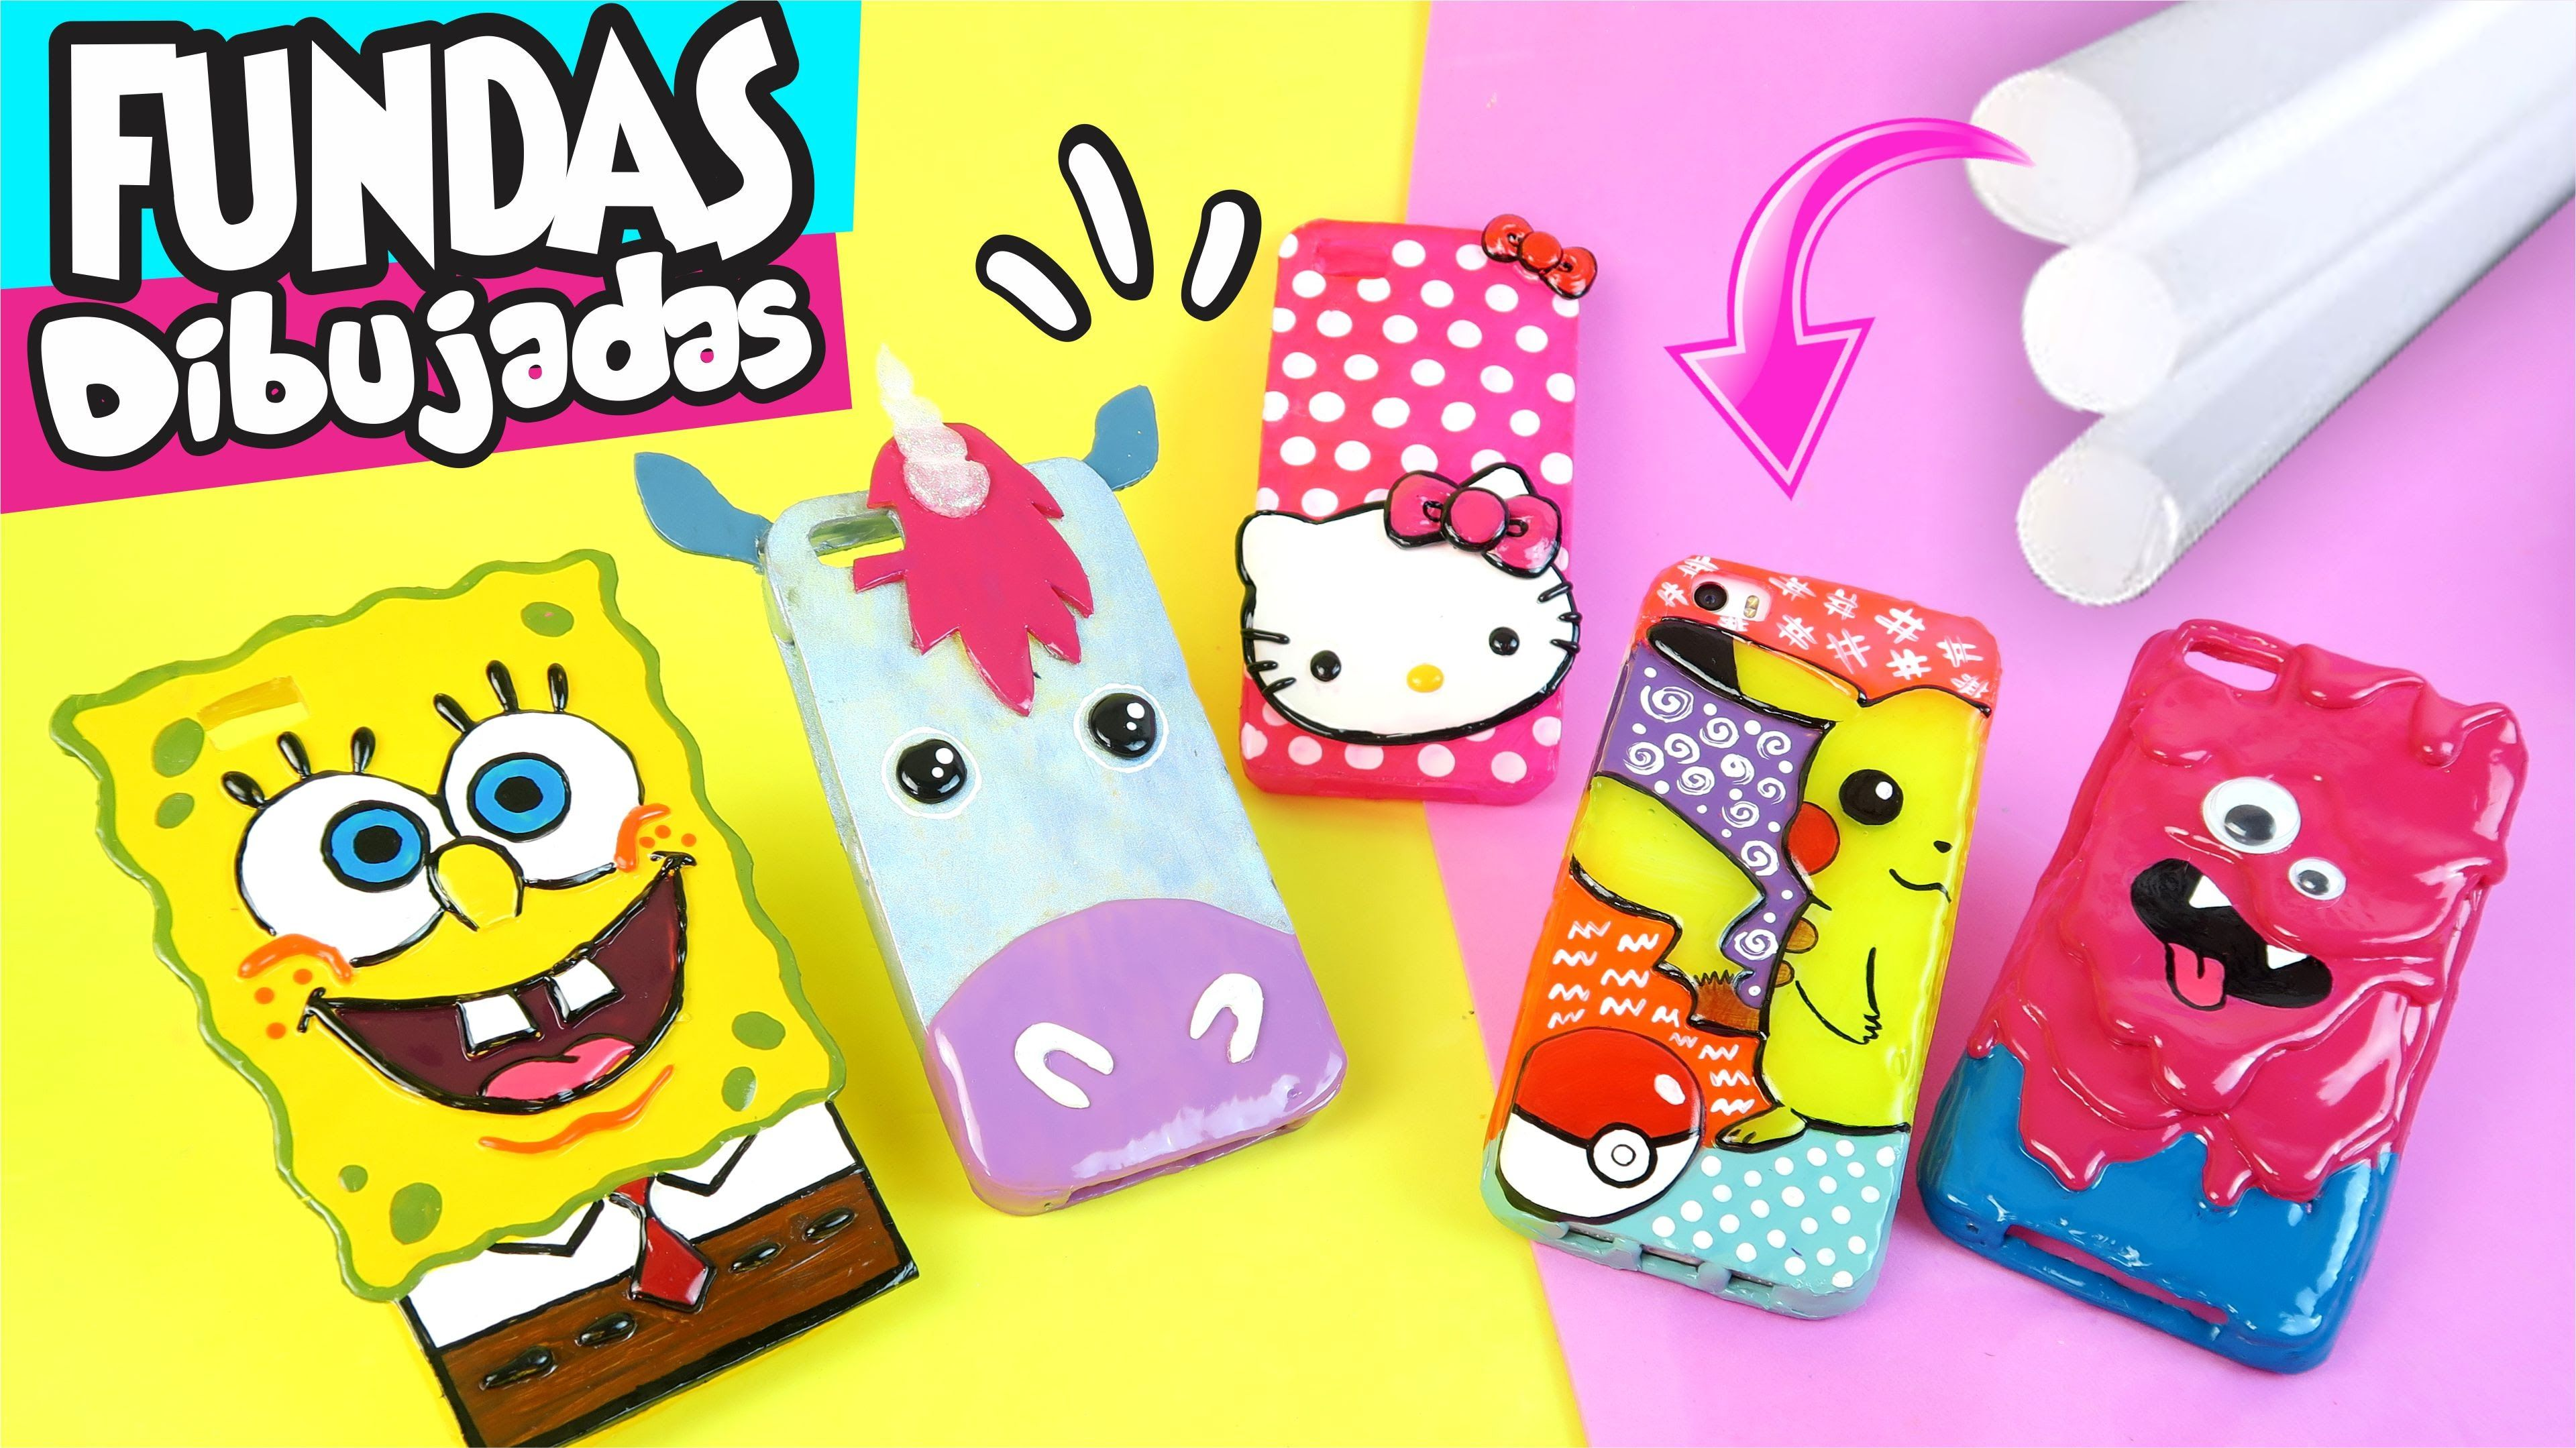 Pin on fundas para mi celular